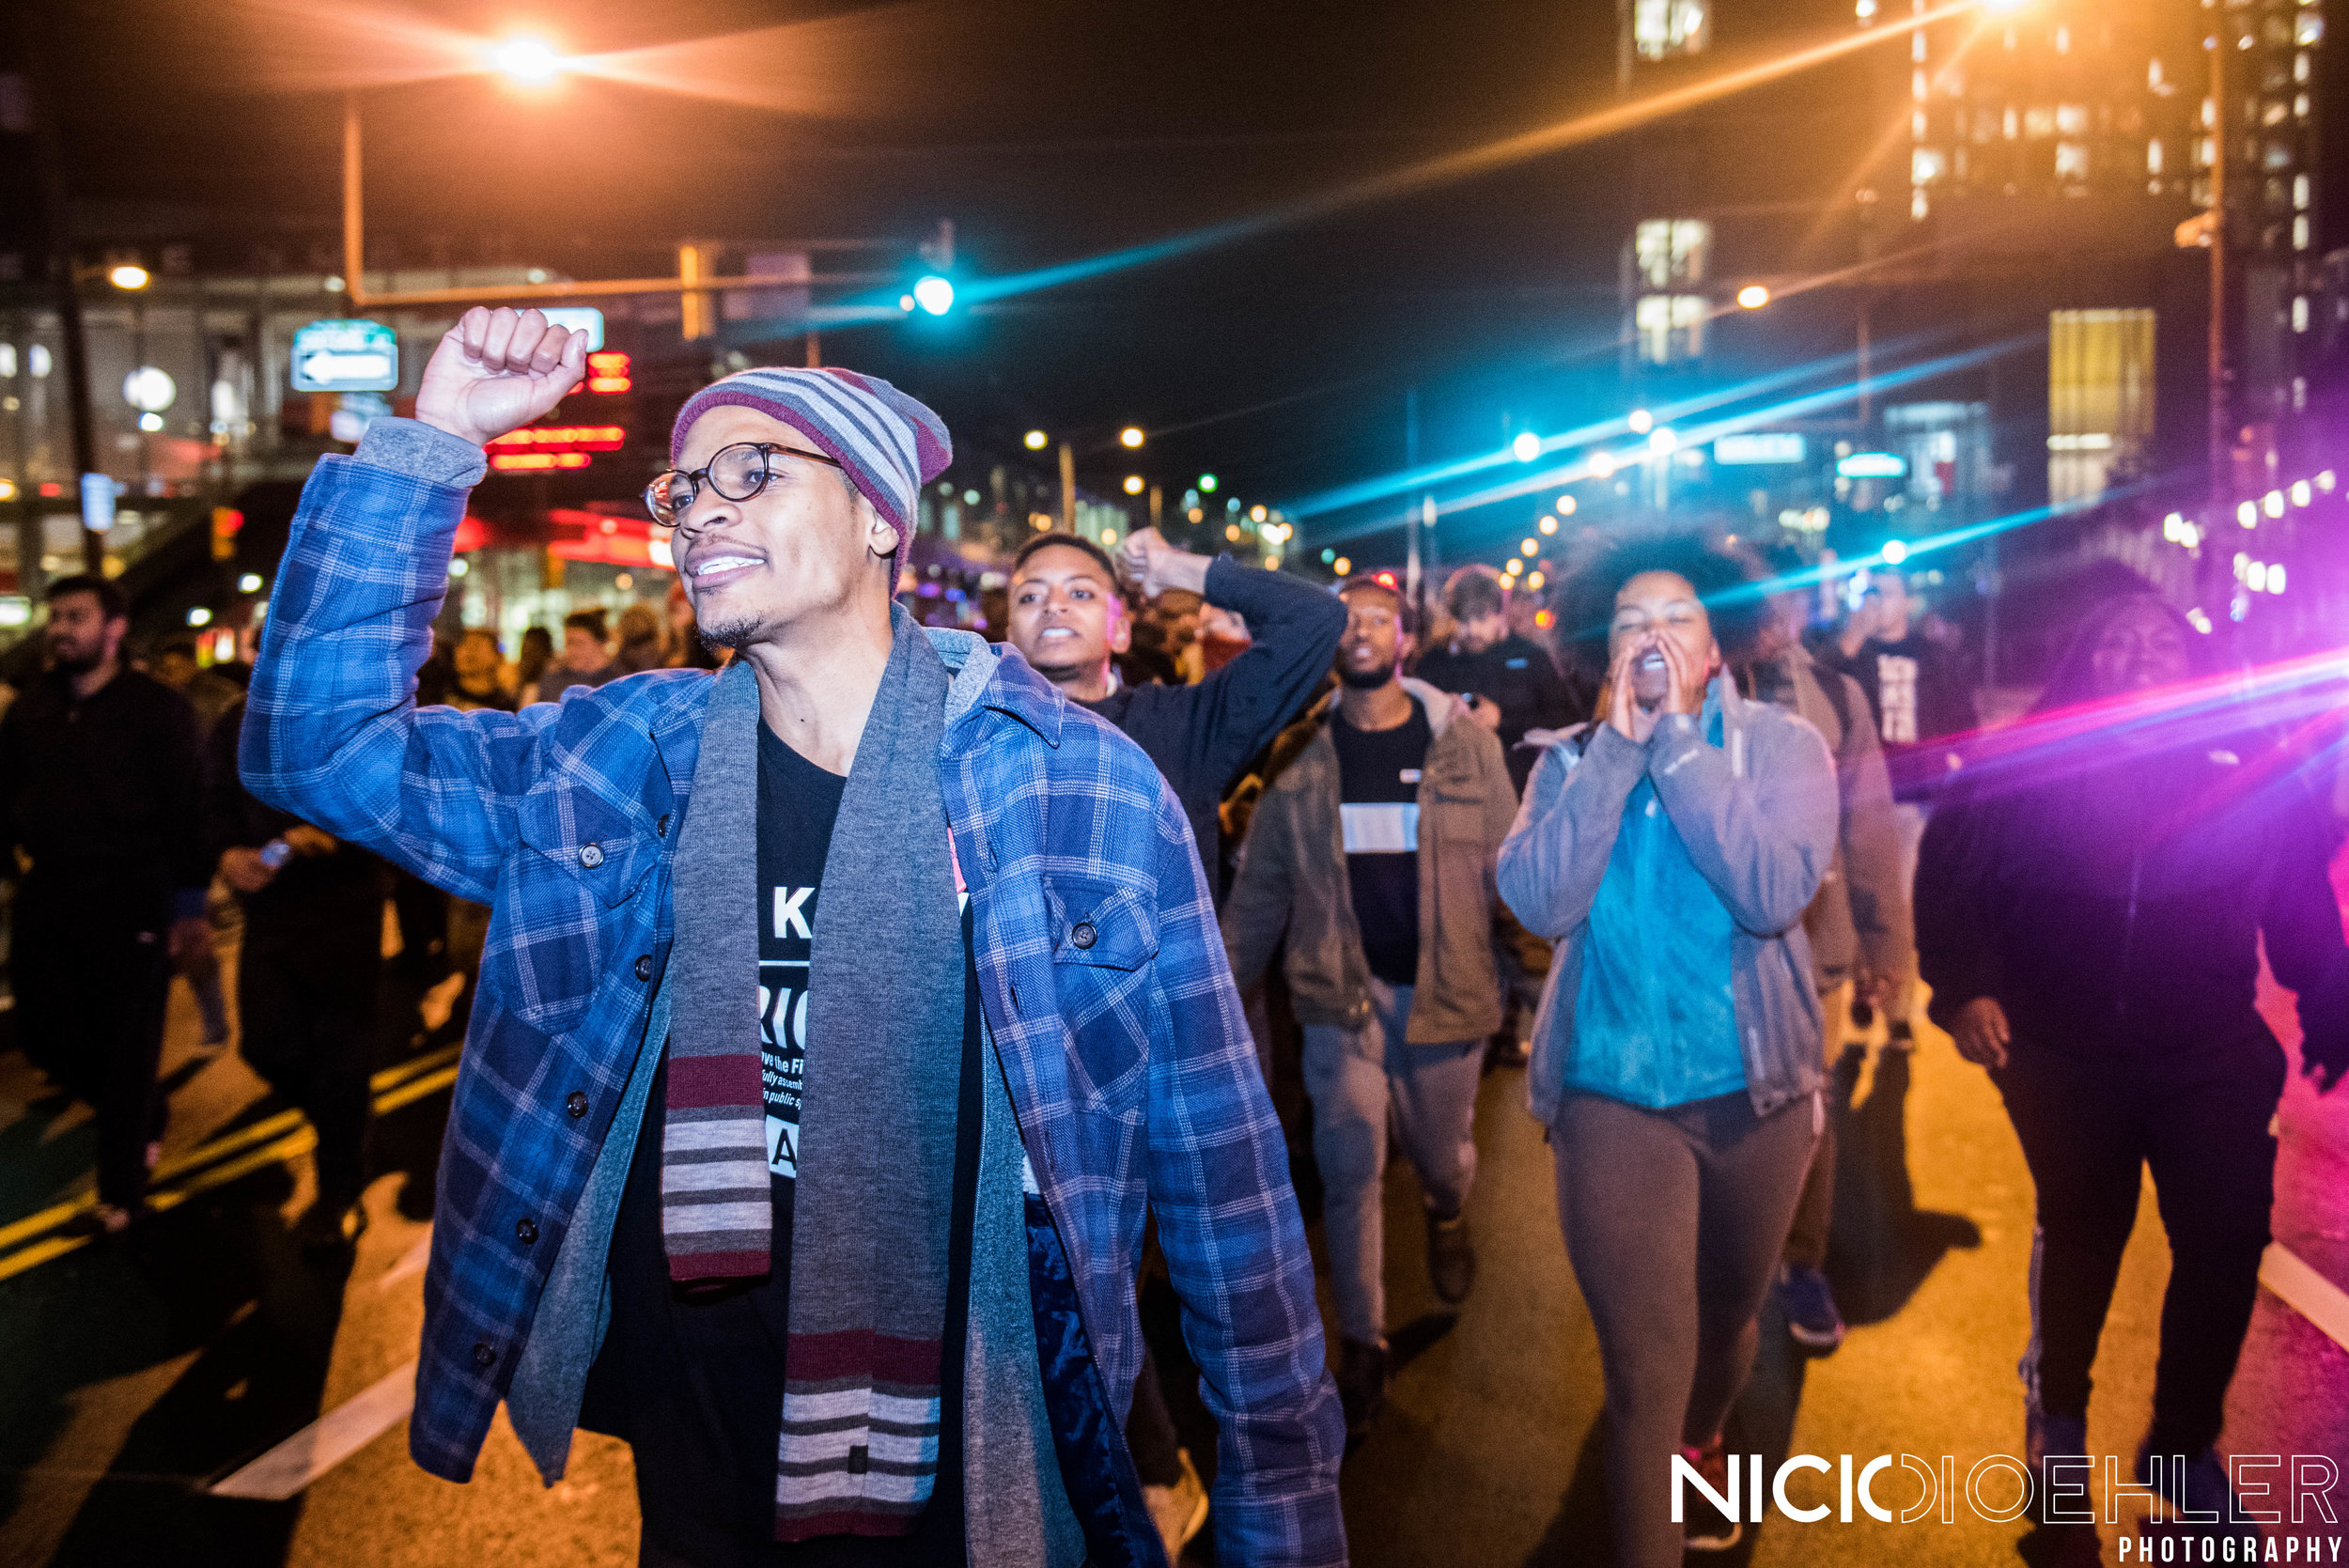 Fists raised high while chanting against President-Elect Donald Trump.